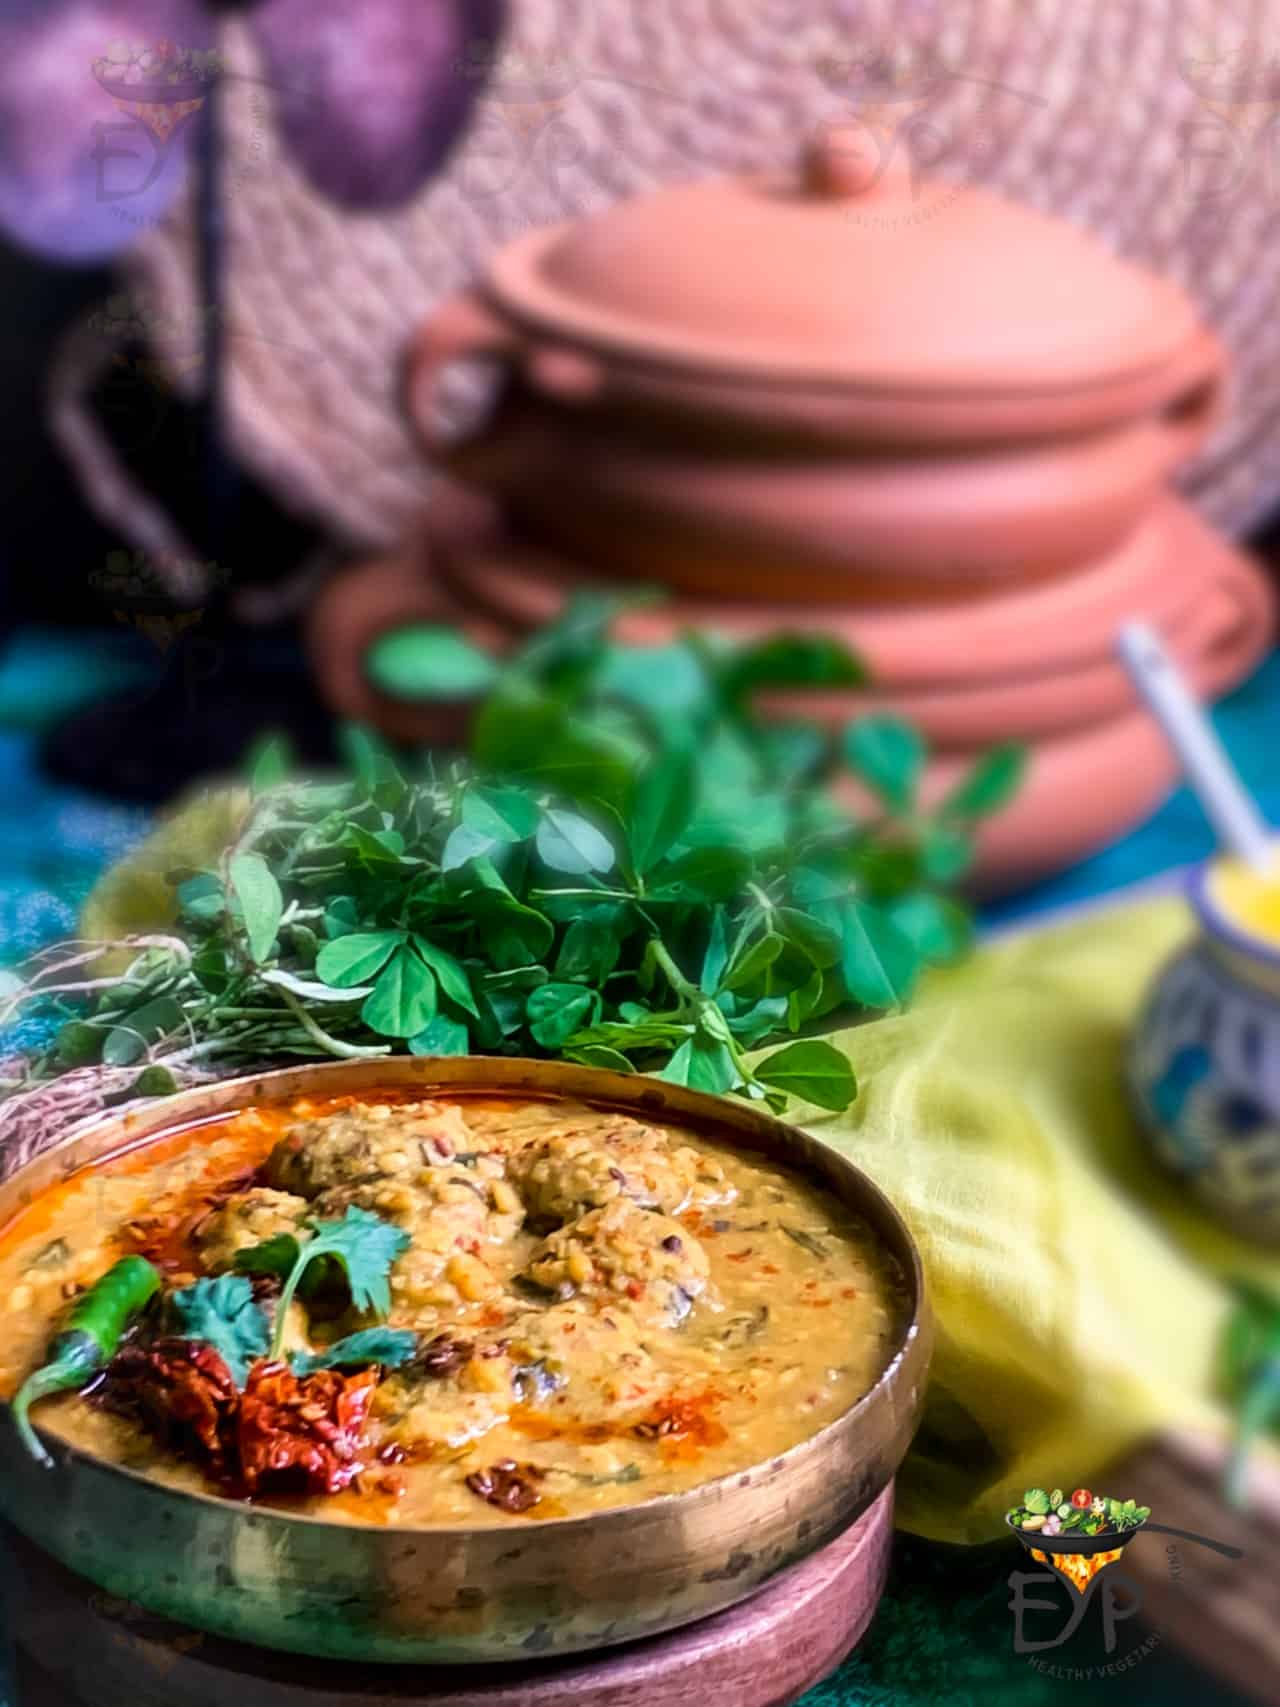 Rajasthani dal dhokli with methi leaves in the background